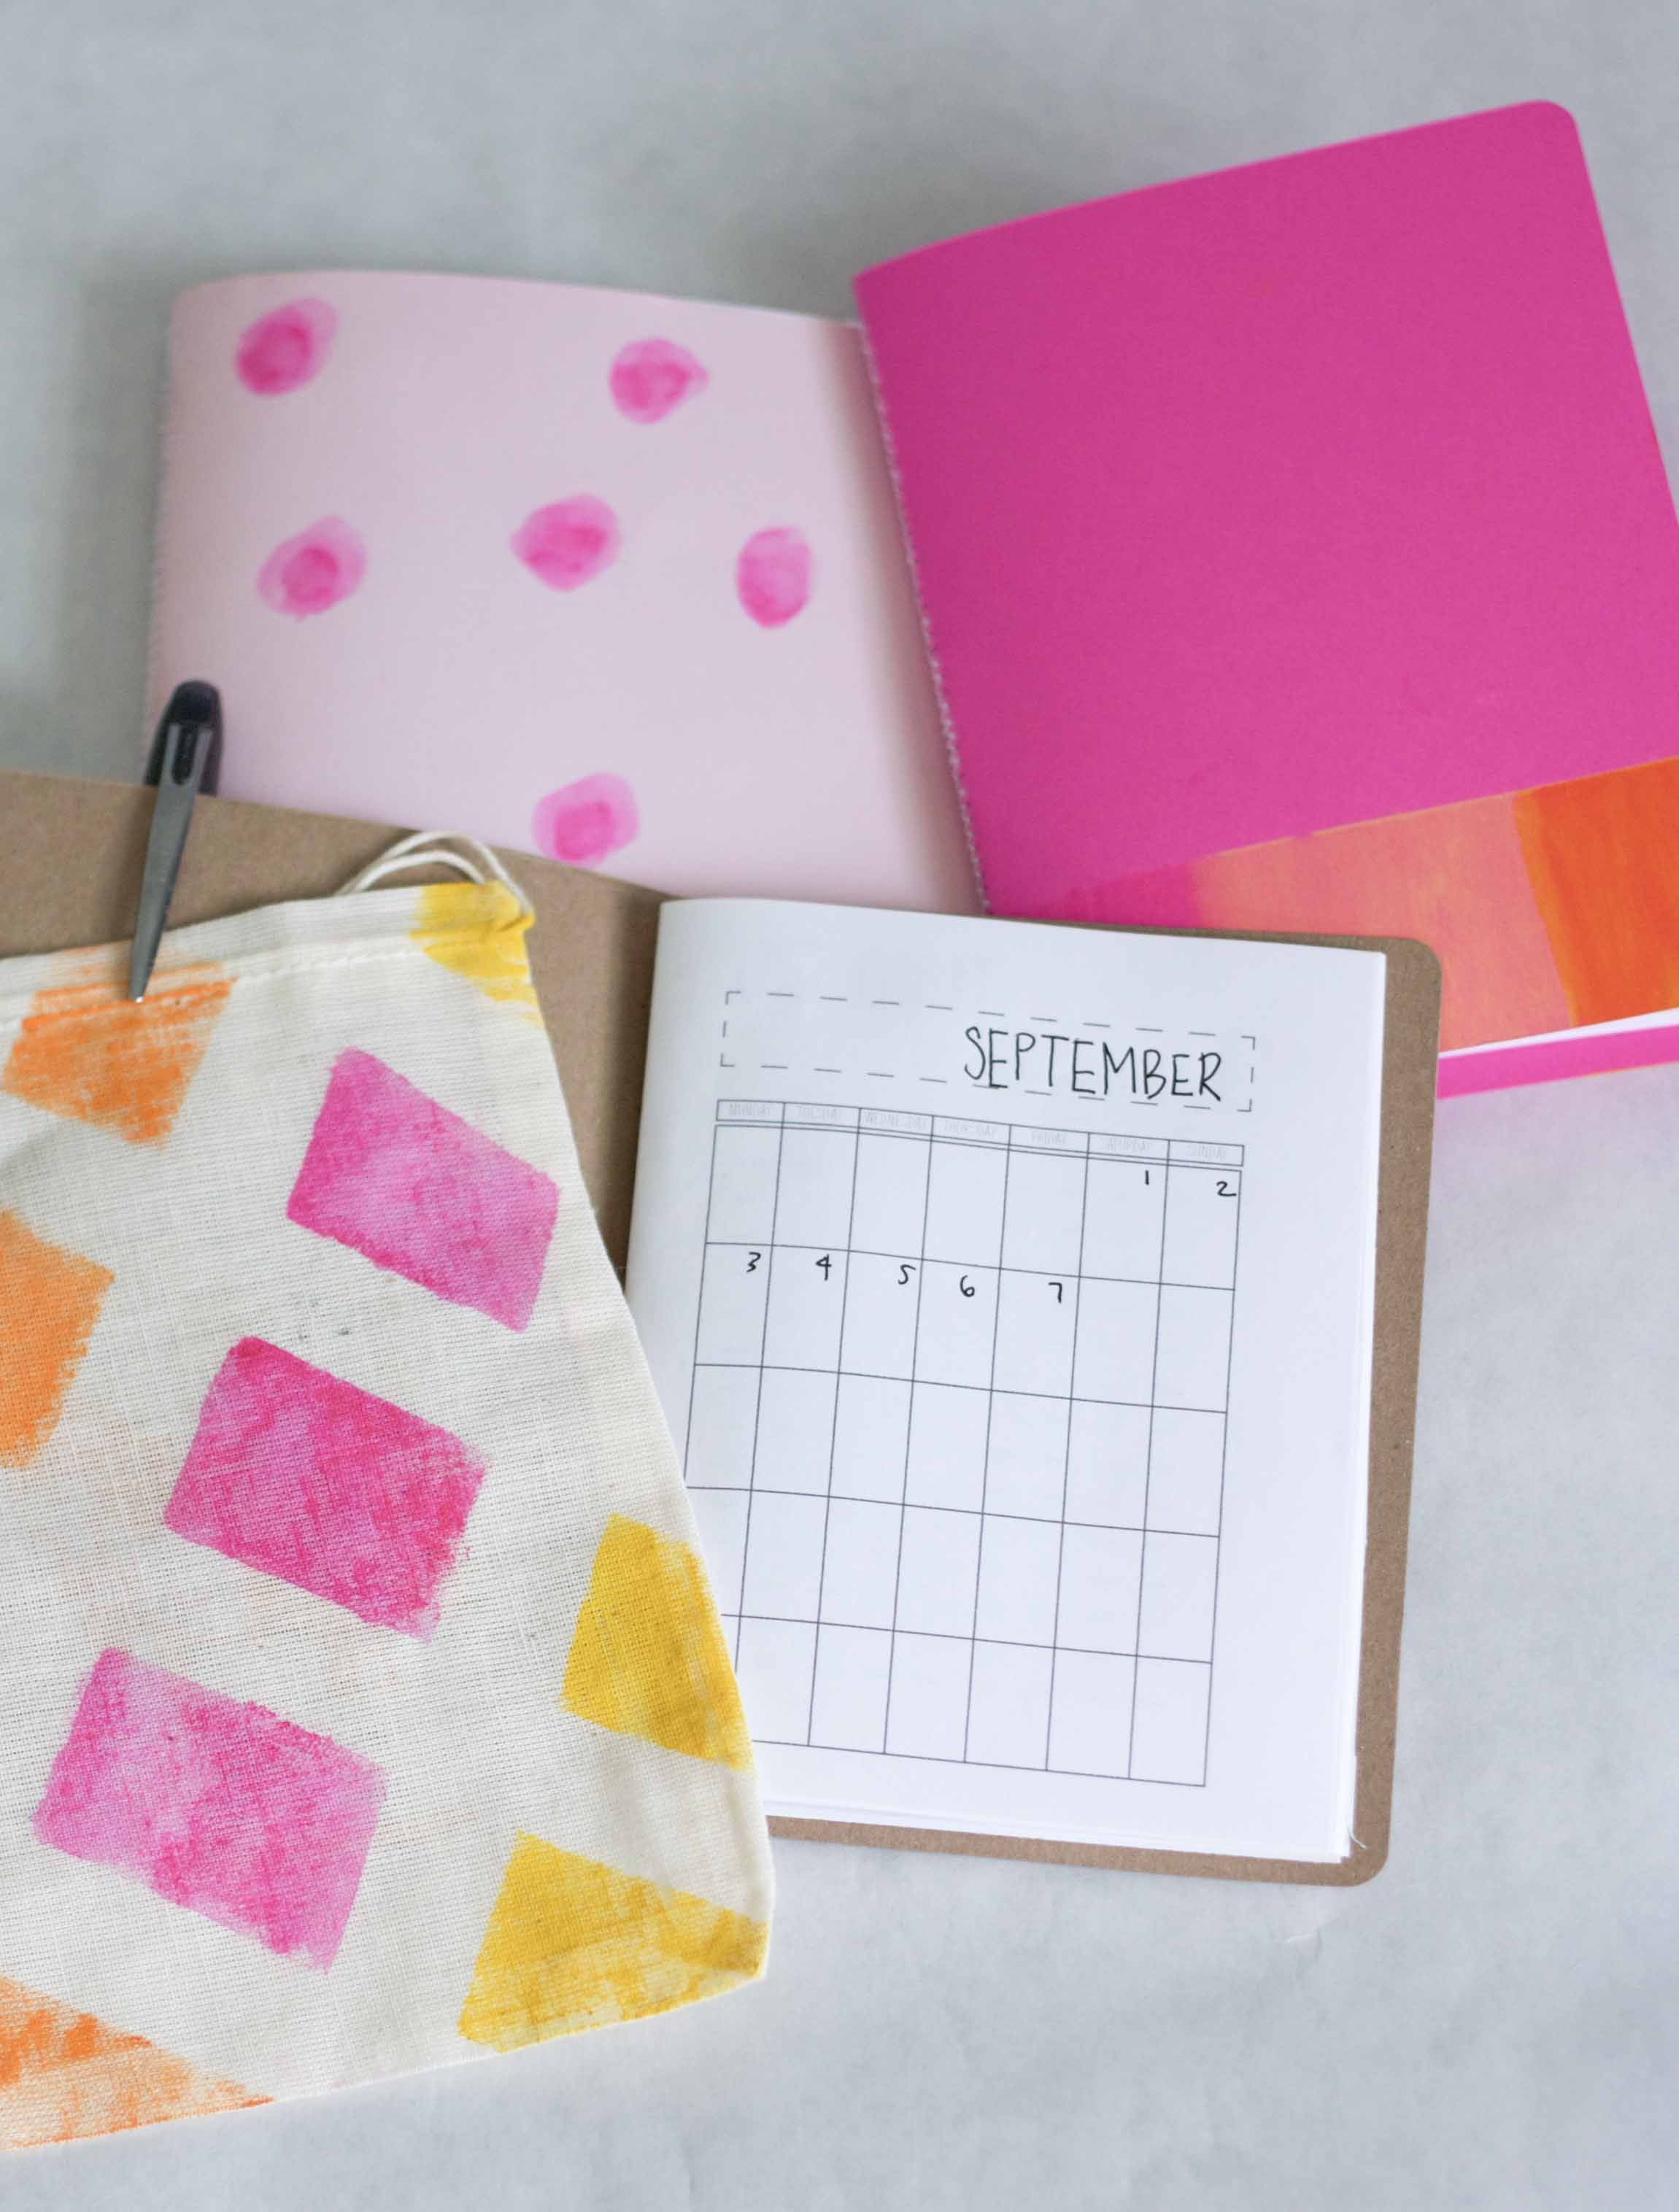 Diy Calendar Book With Printable Calendar Pages Could Make One